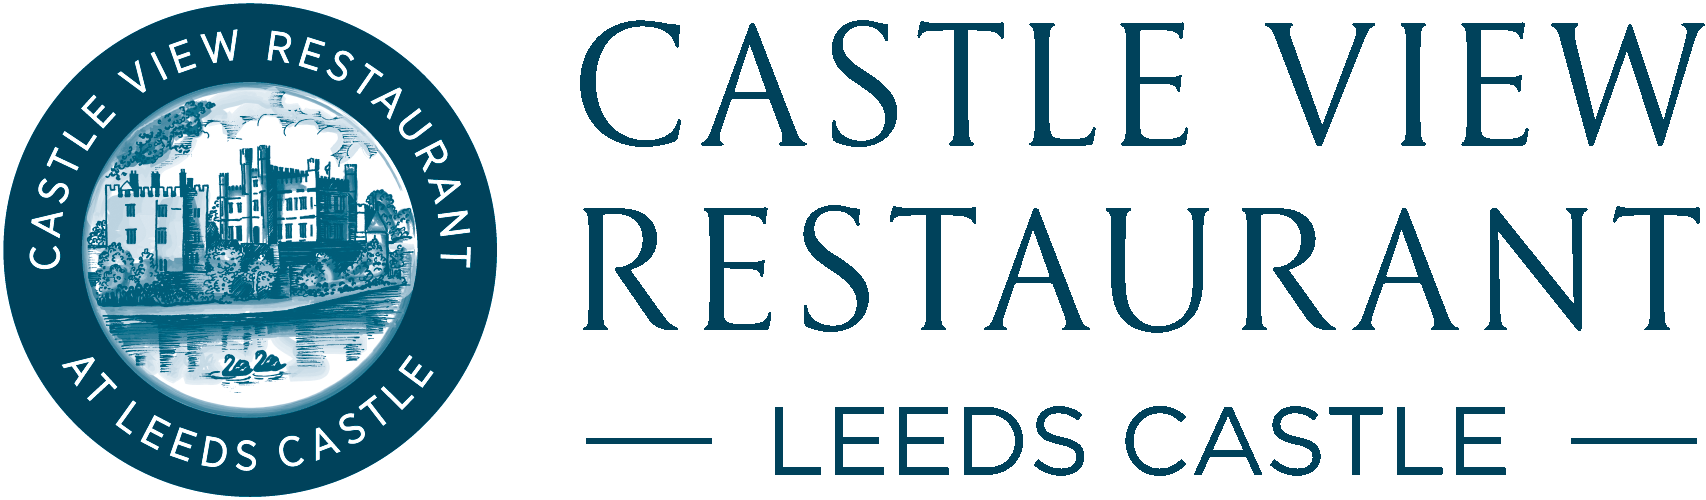 Castle View Restaurant